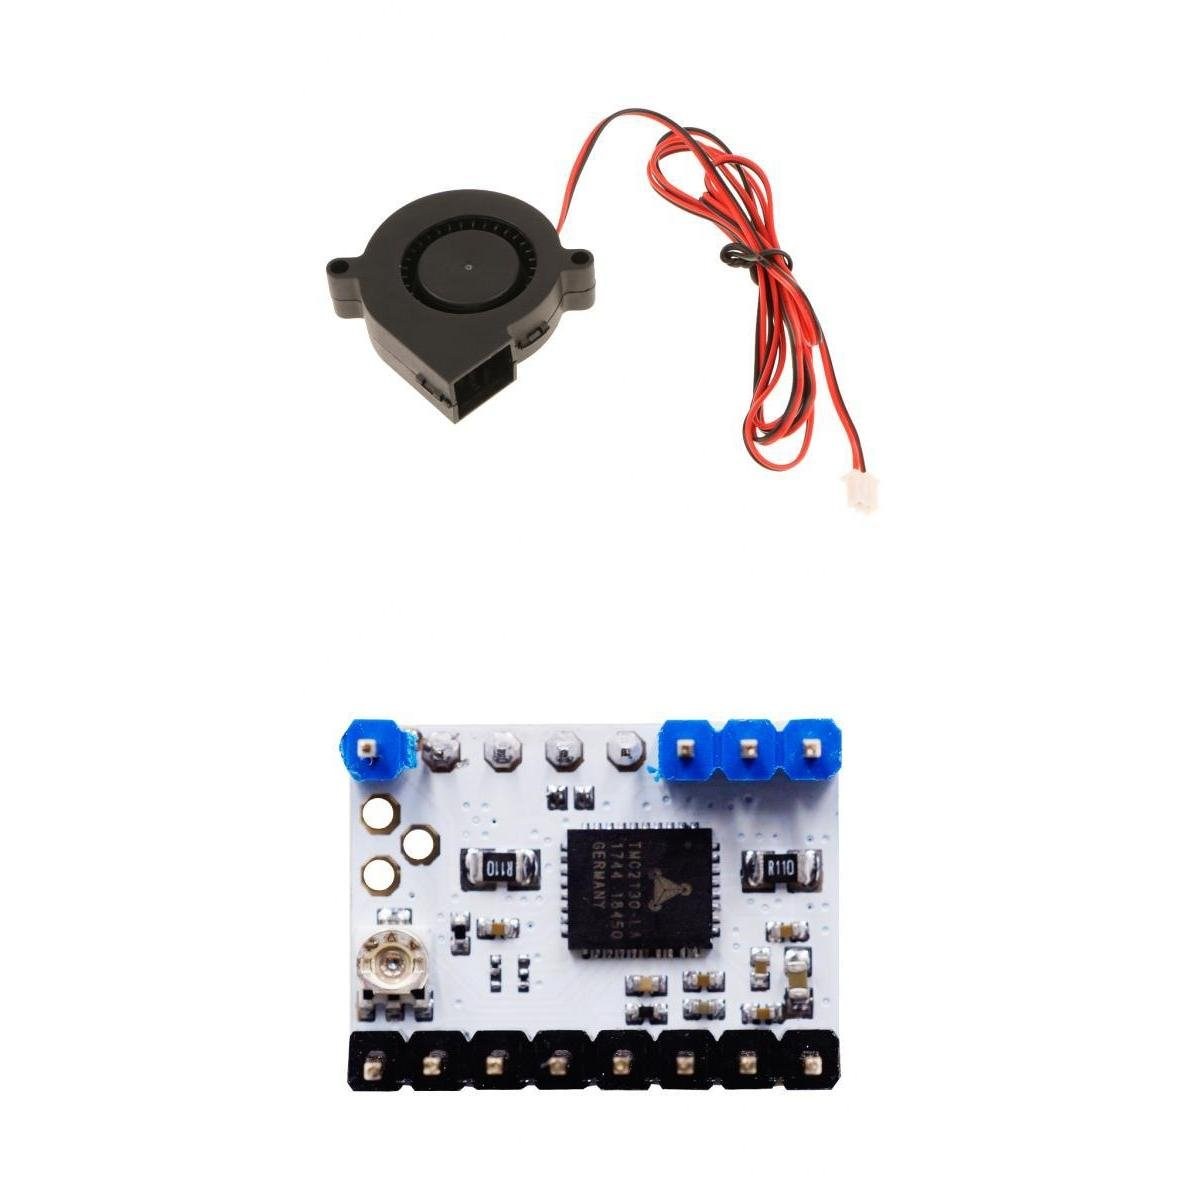 MagiDeal TMC2130 Stepper Motor Driver Module with Heat Sink&Mini Turbo Cooling Fan by MagiDeal